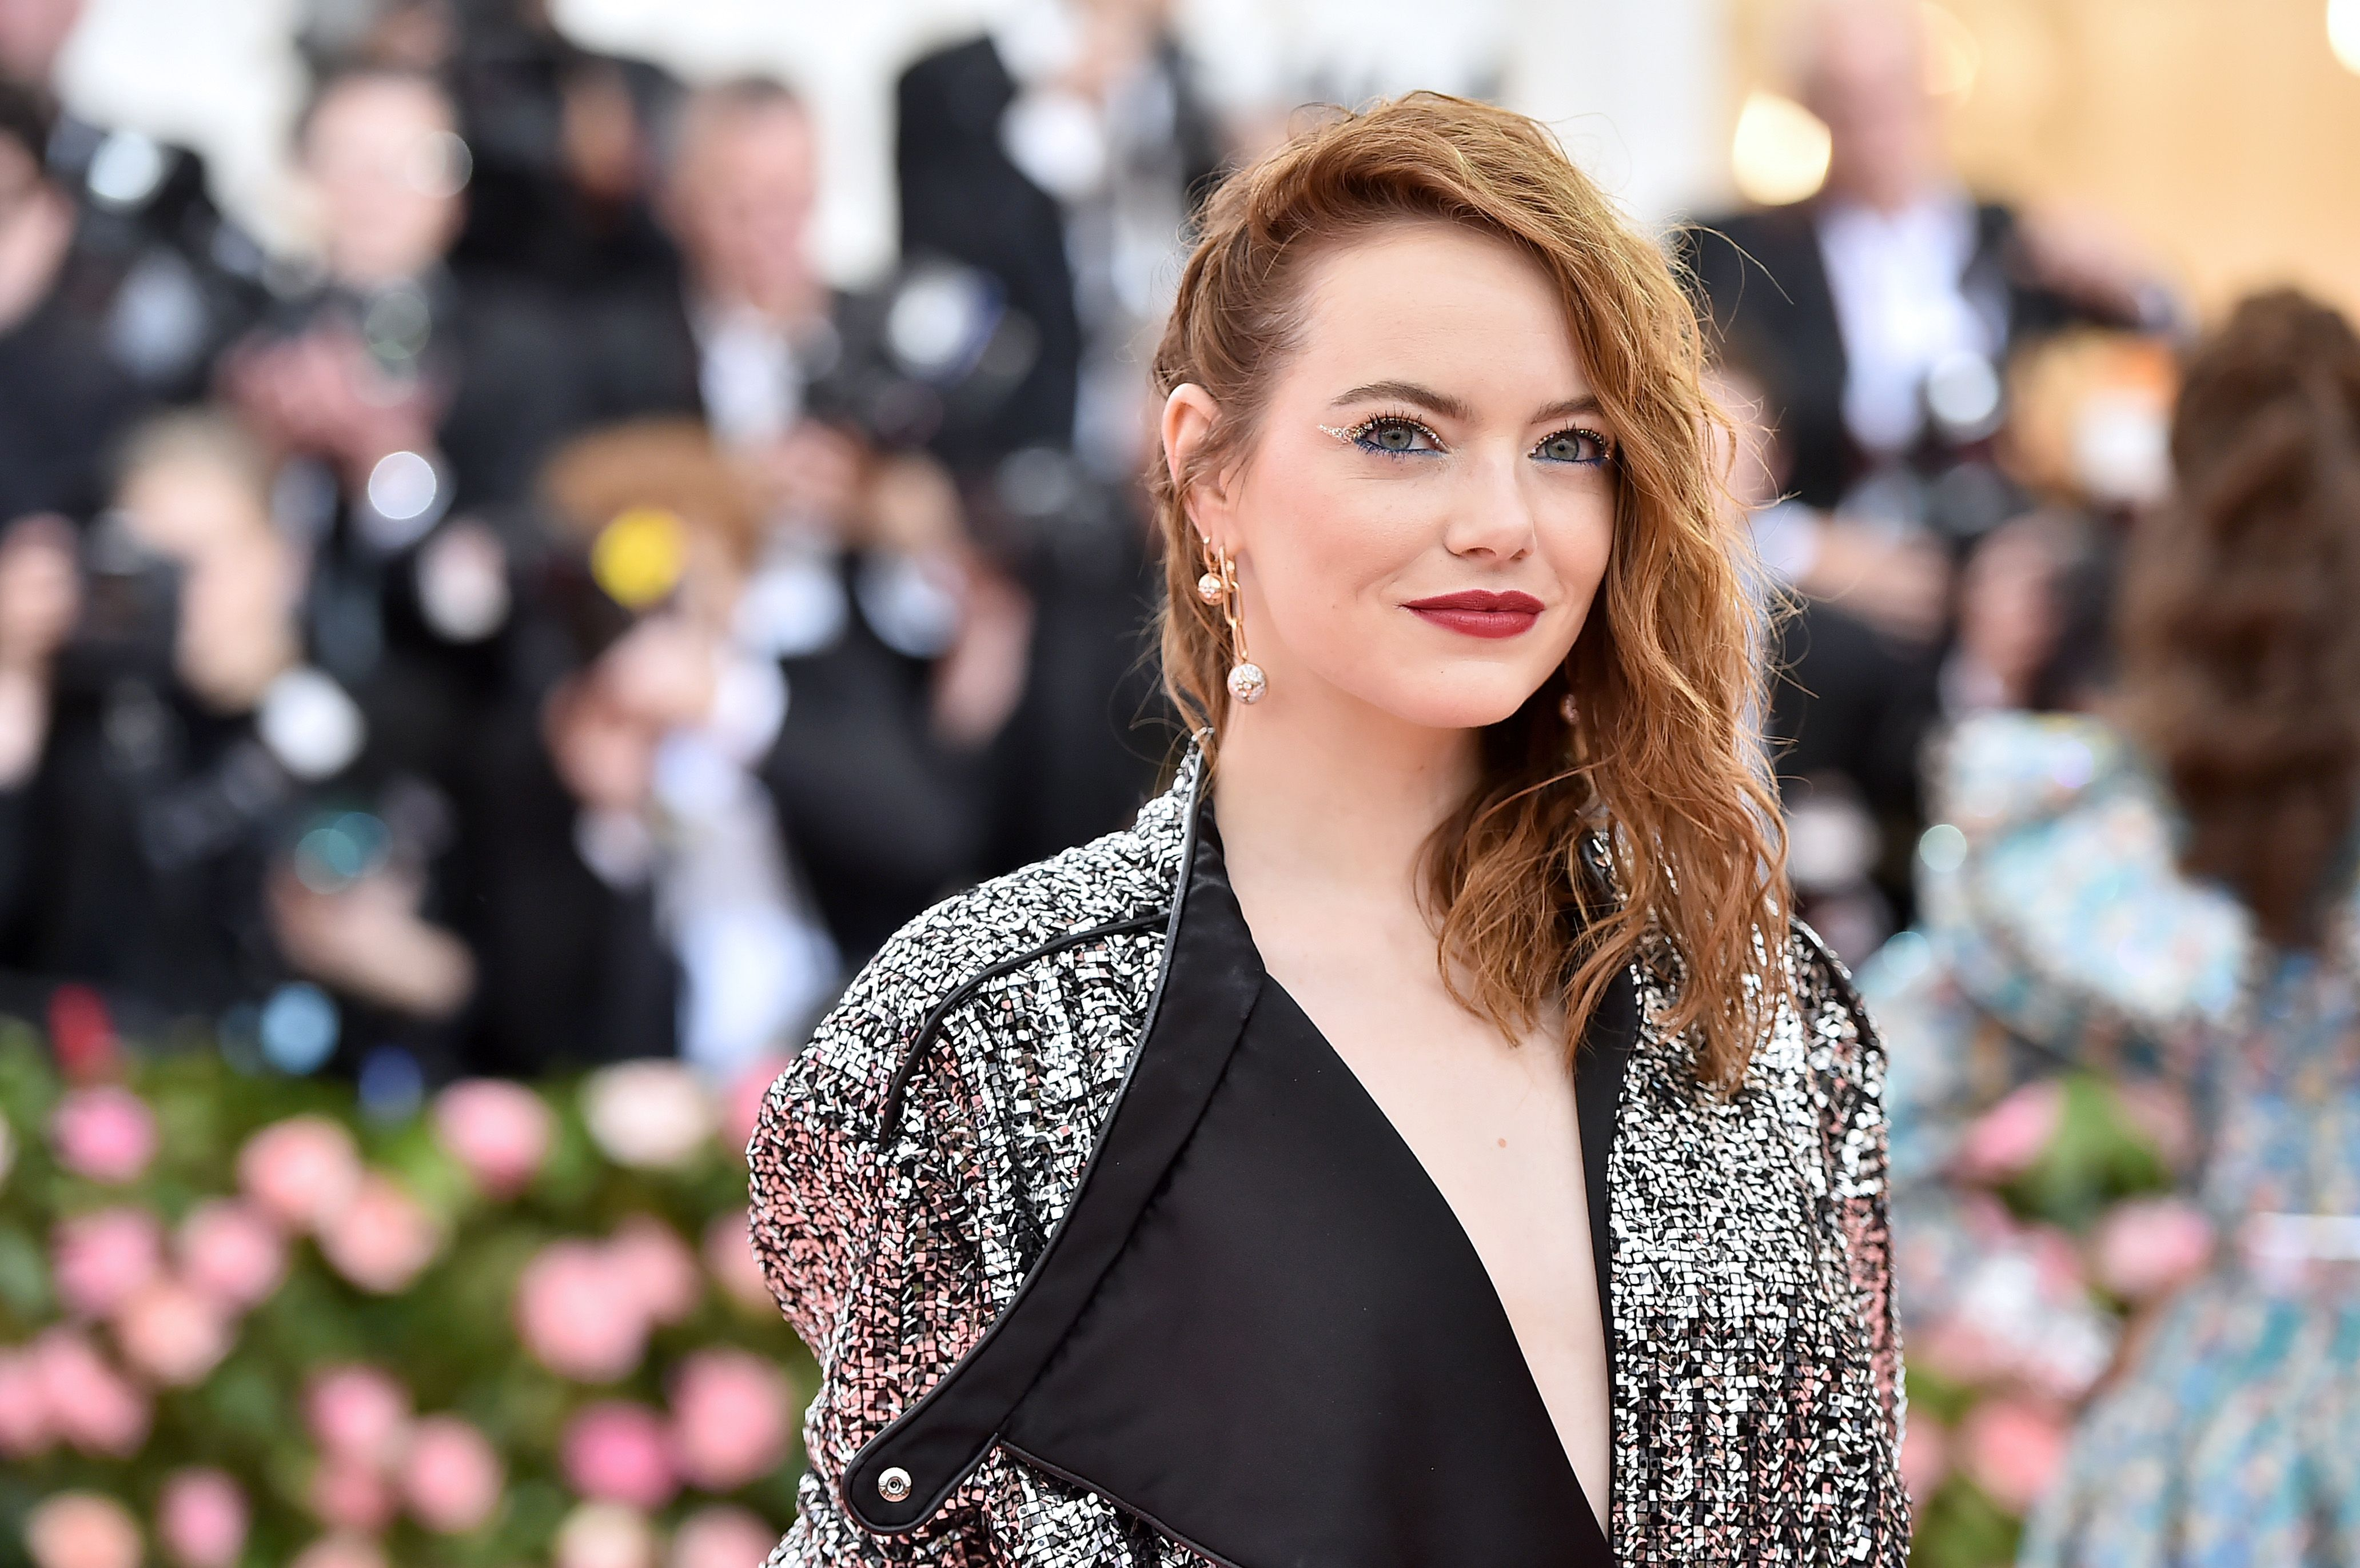 Here's the First Look at Emma Stone as Cruella De Vil